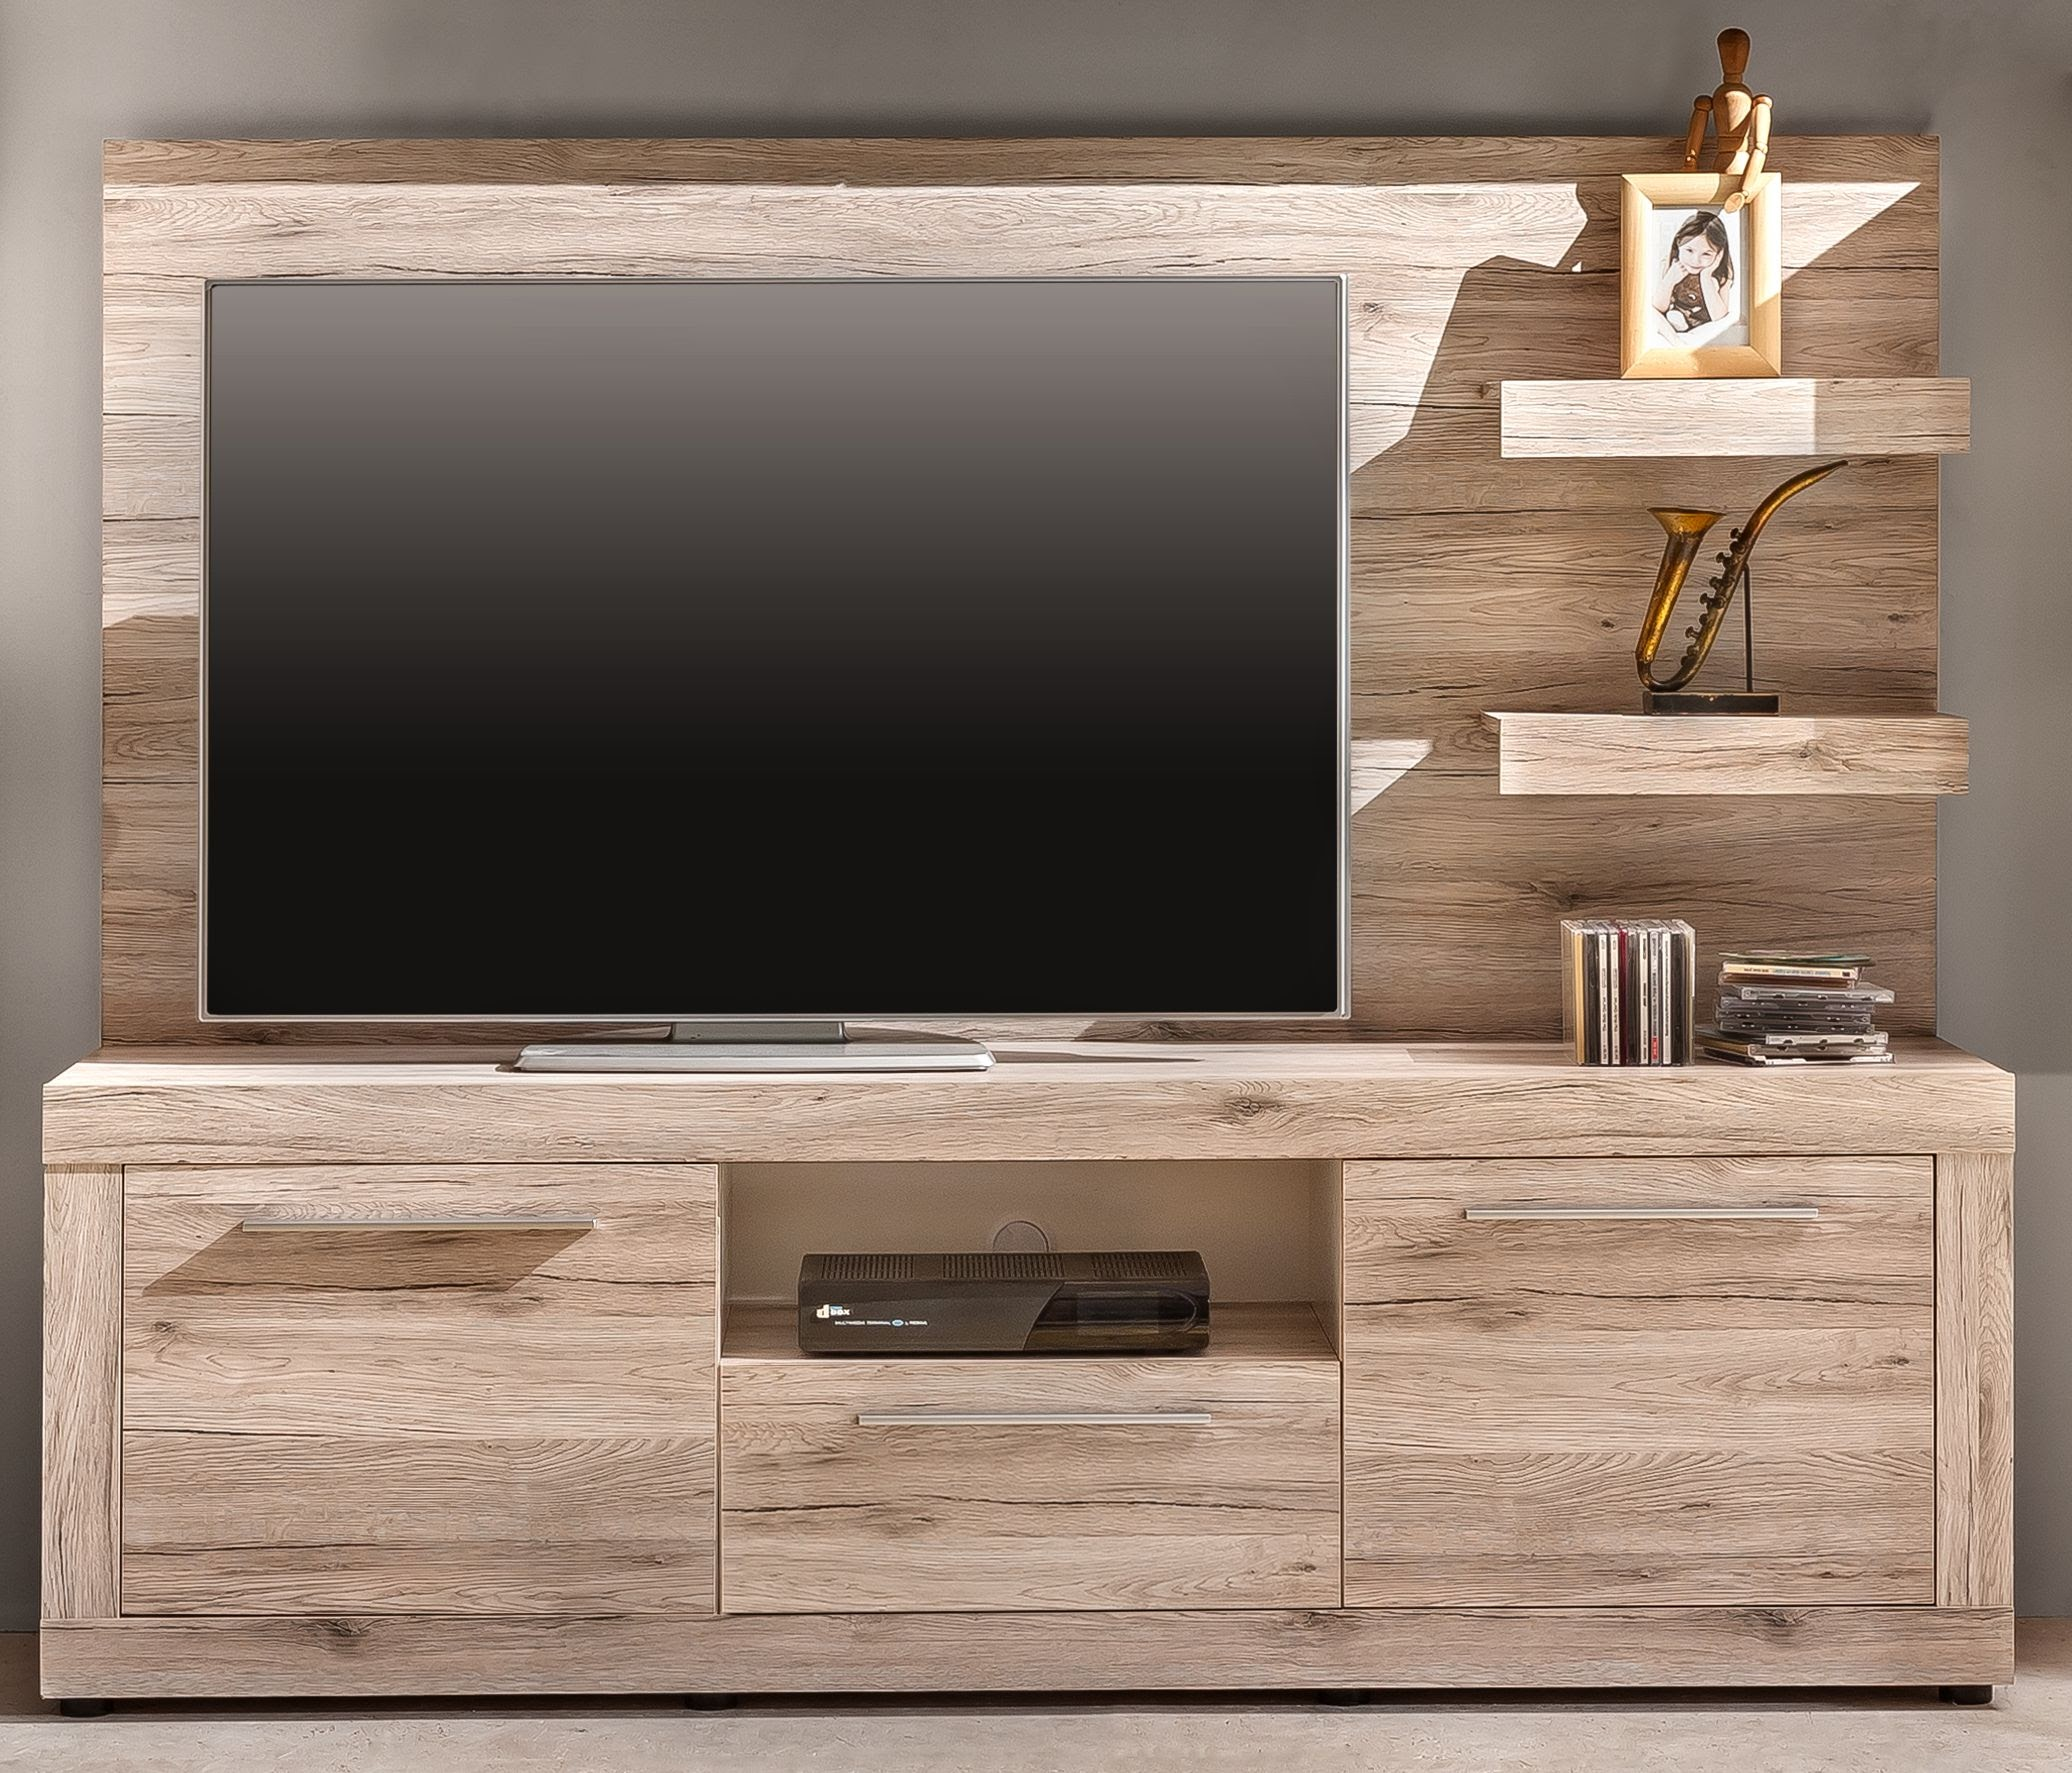 tv unterschrank passat von trendteam eiche san remo sand. Black Bedroom Furniture Sets. Home Design Ideas